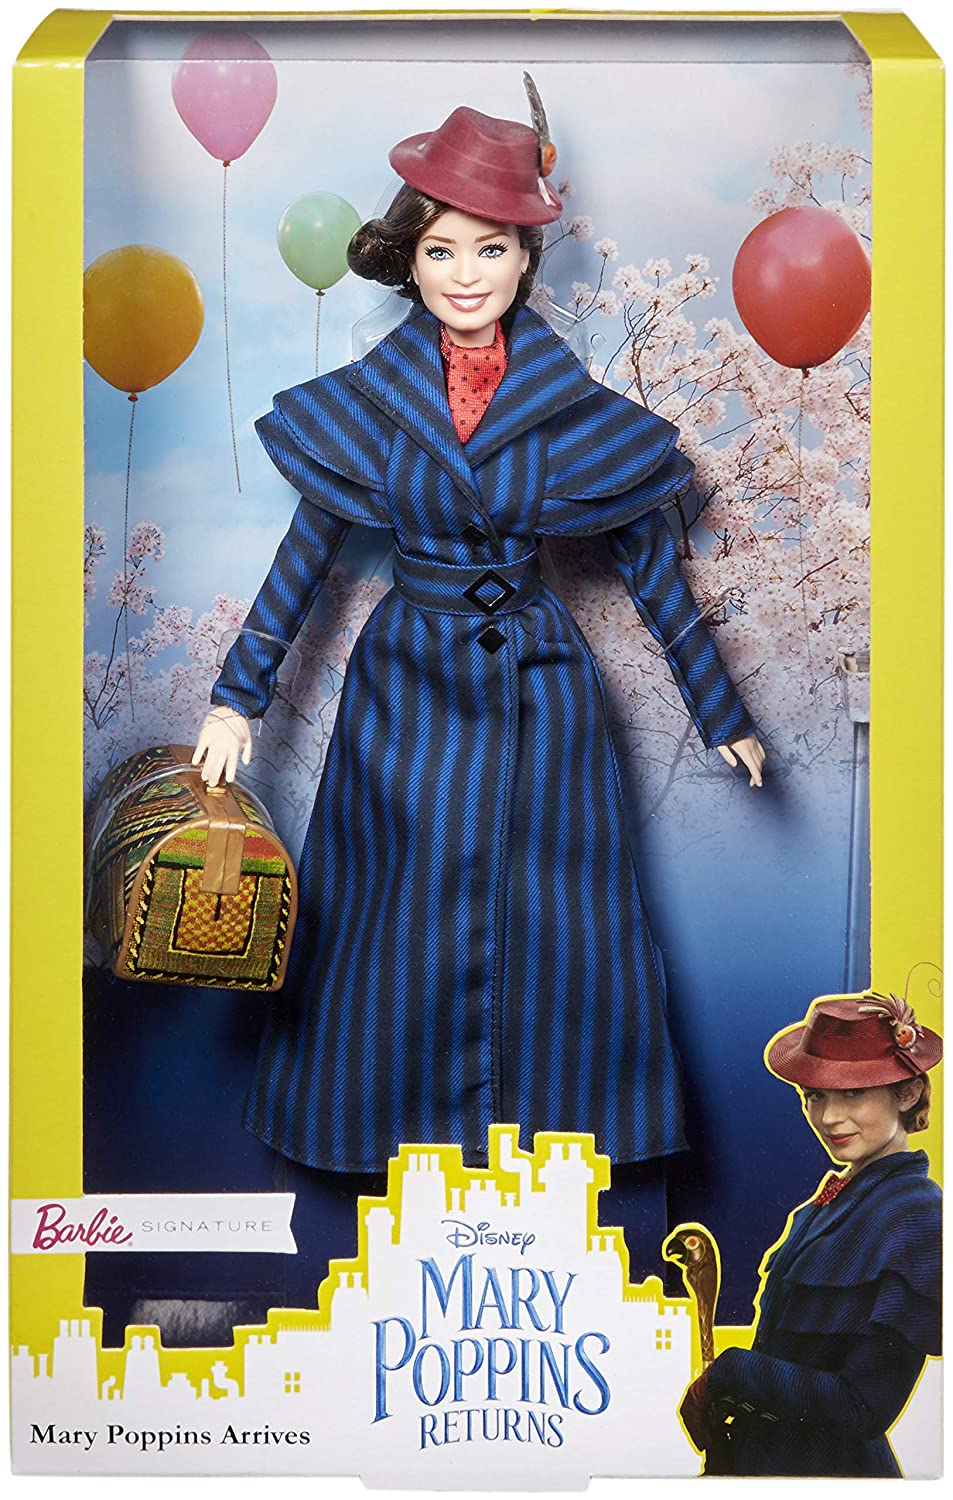 d4bb0c147d0 Amazon.com  Barbie Disney Mary Poppins Arrives Doll  Toys   Games